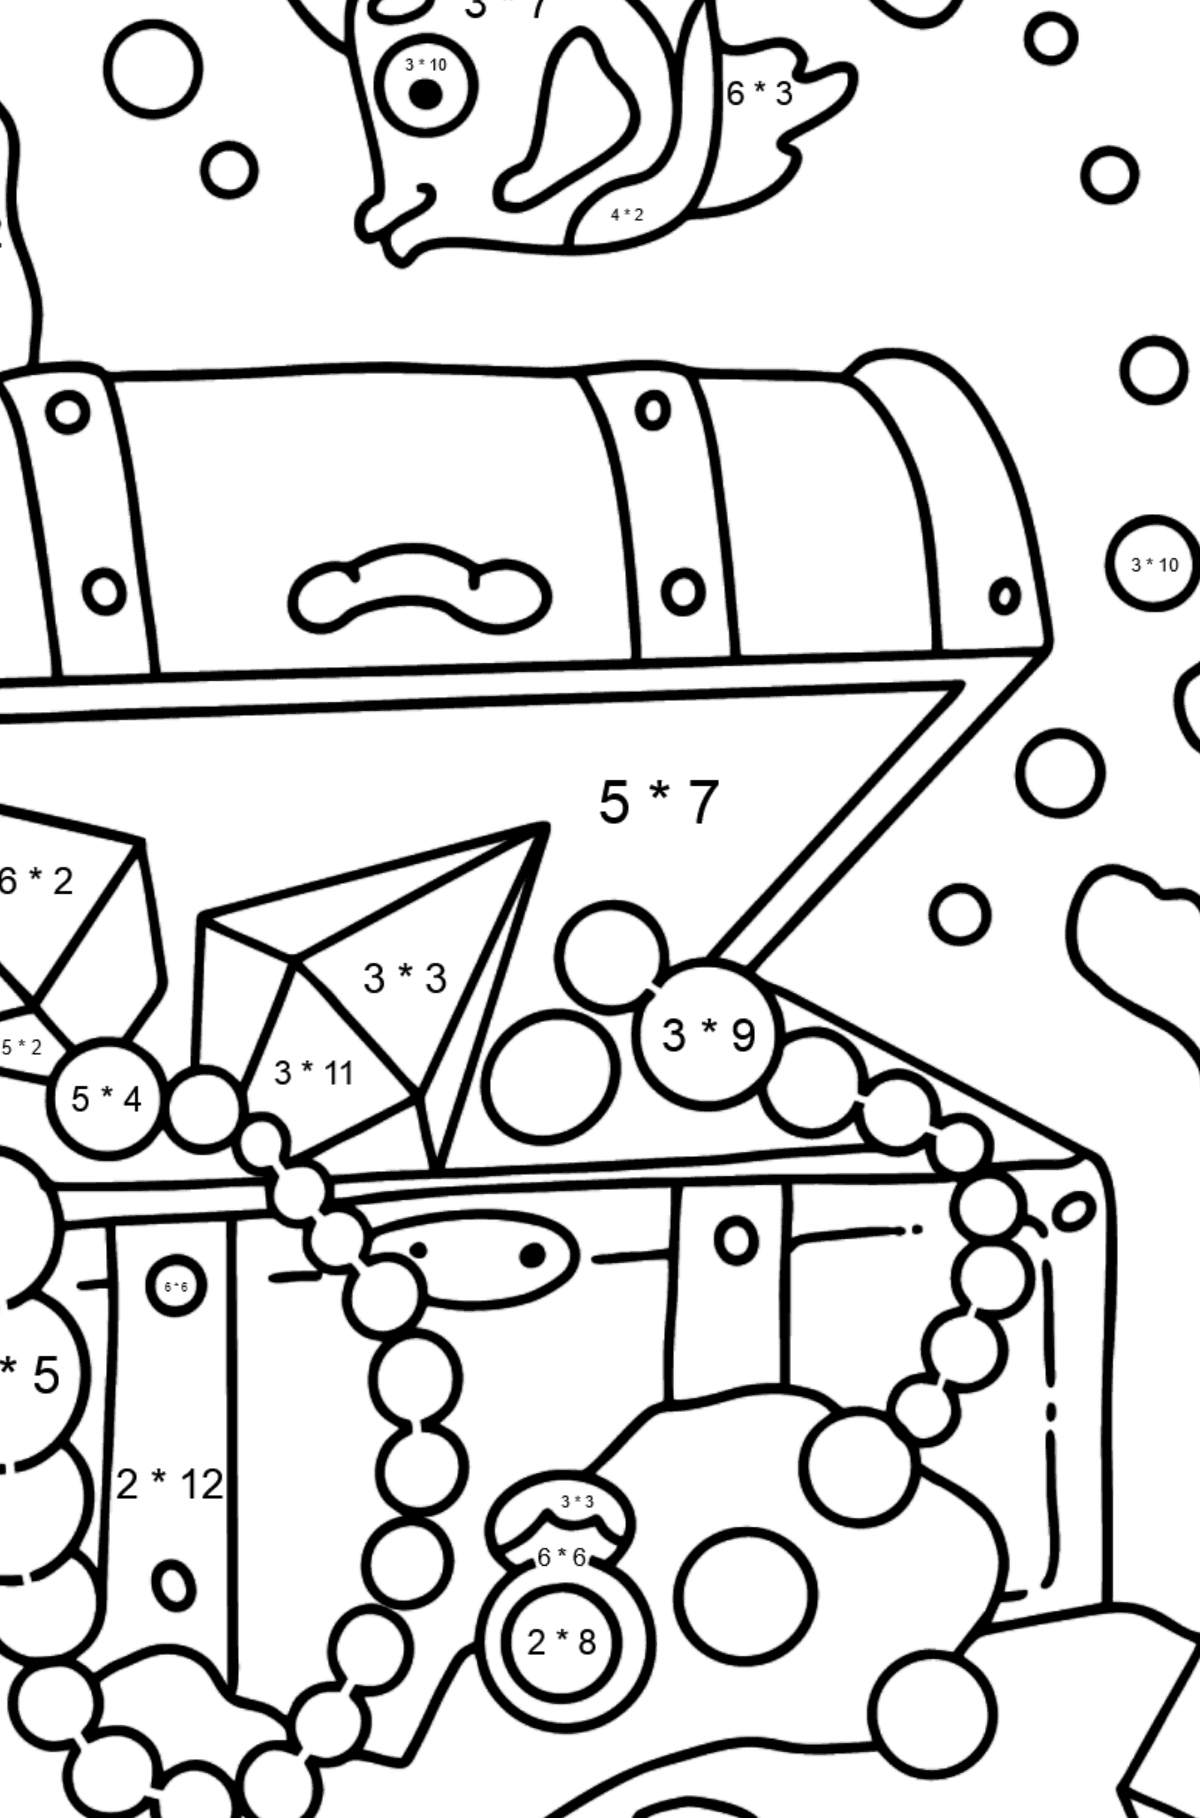 Coloring Page - A Fish is Looking for a Treasure - Math Coloring - Multiplication for Kids